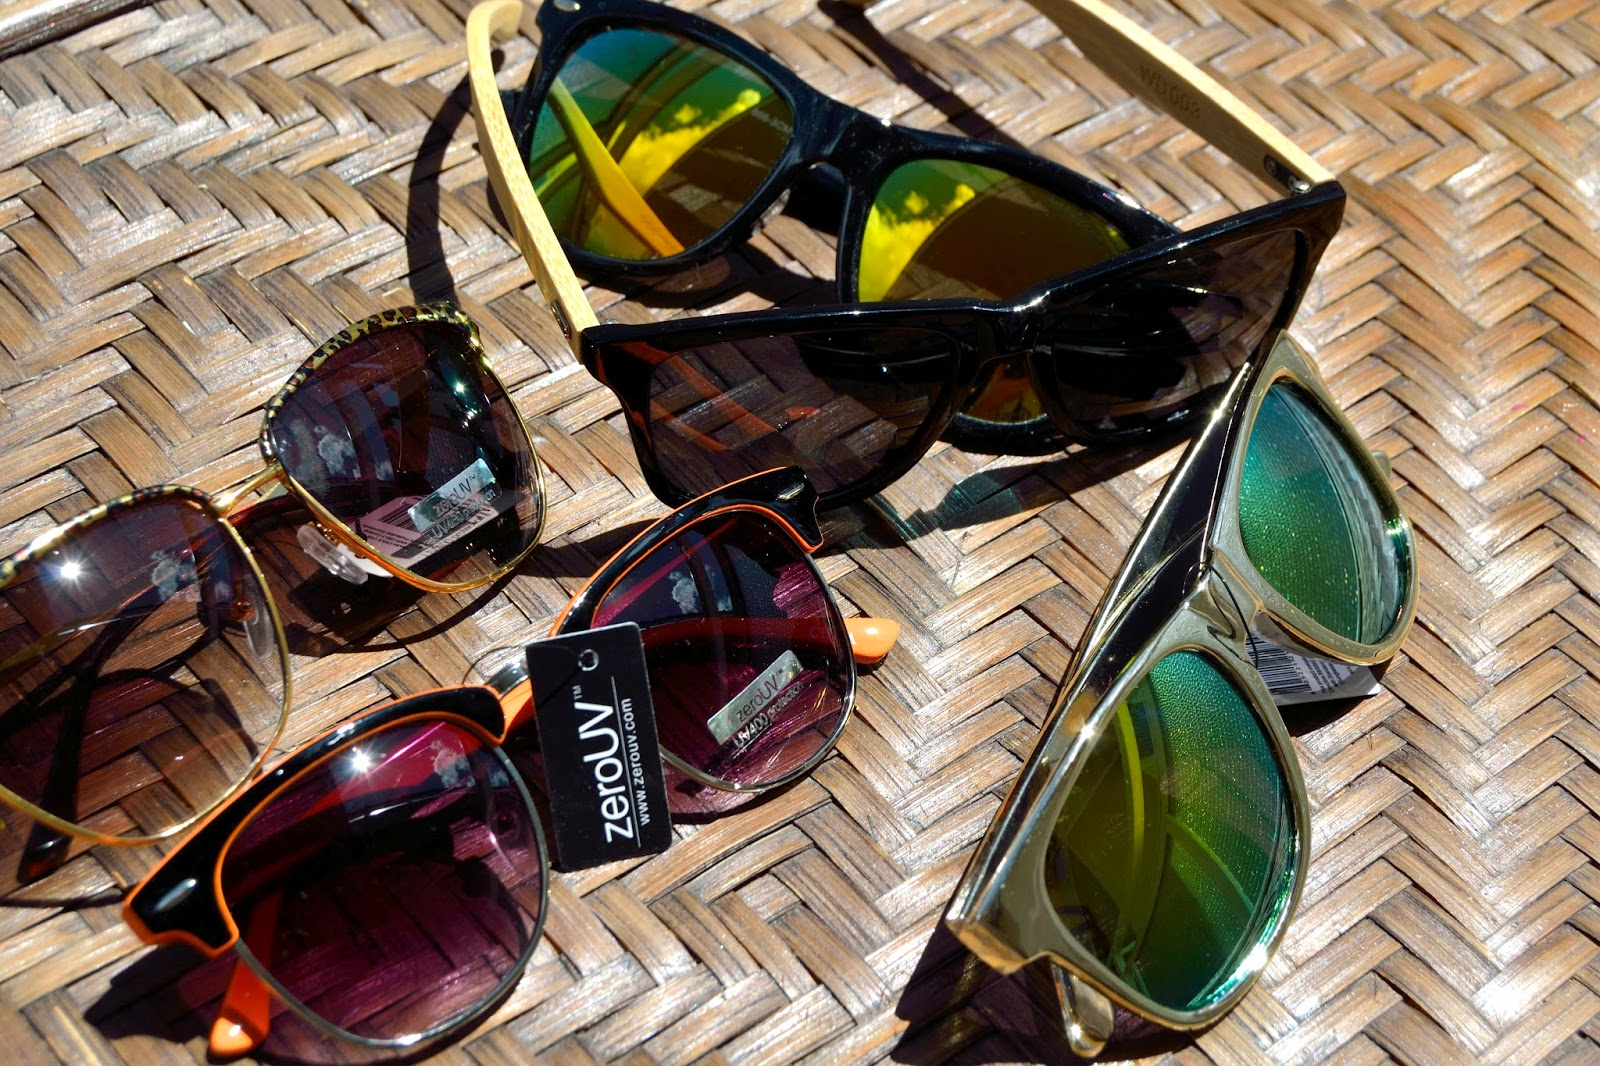 http://www.syriouslyinfashion.com/2014/07/zerouv-current-sunglasses-obsession.html